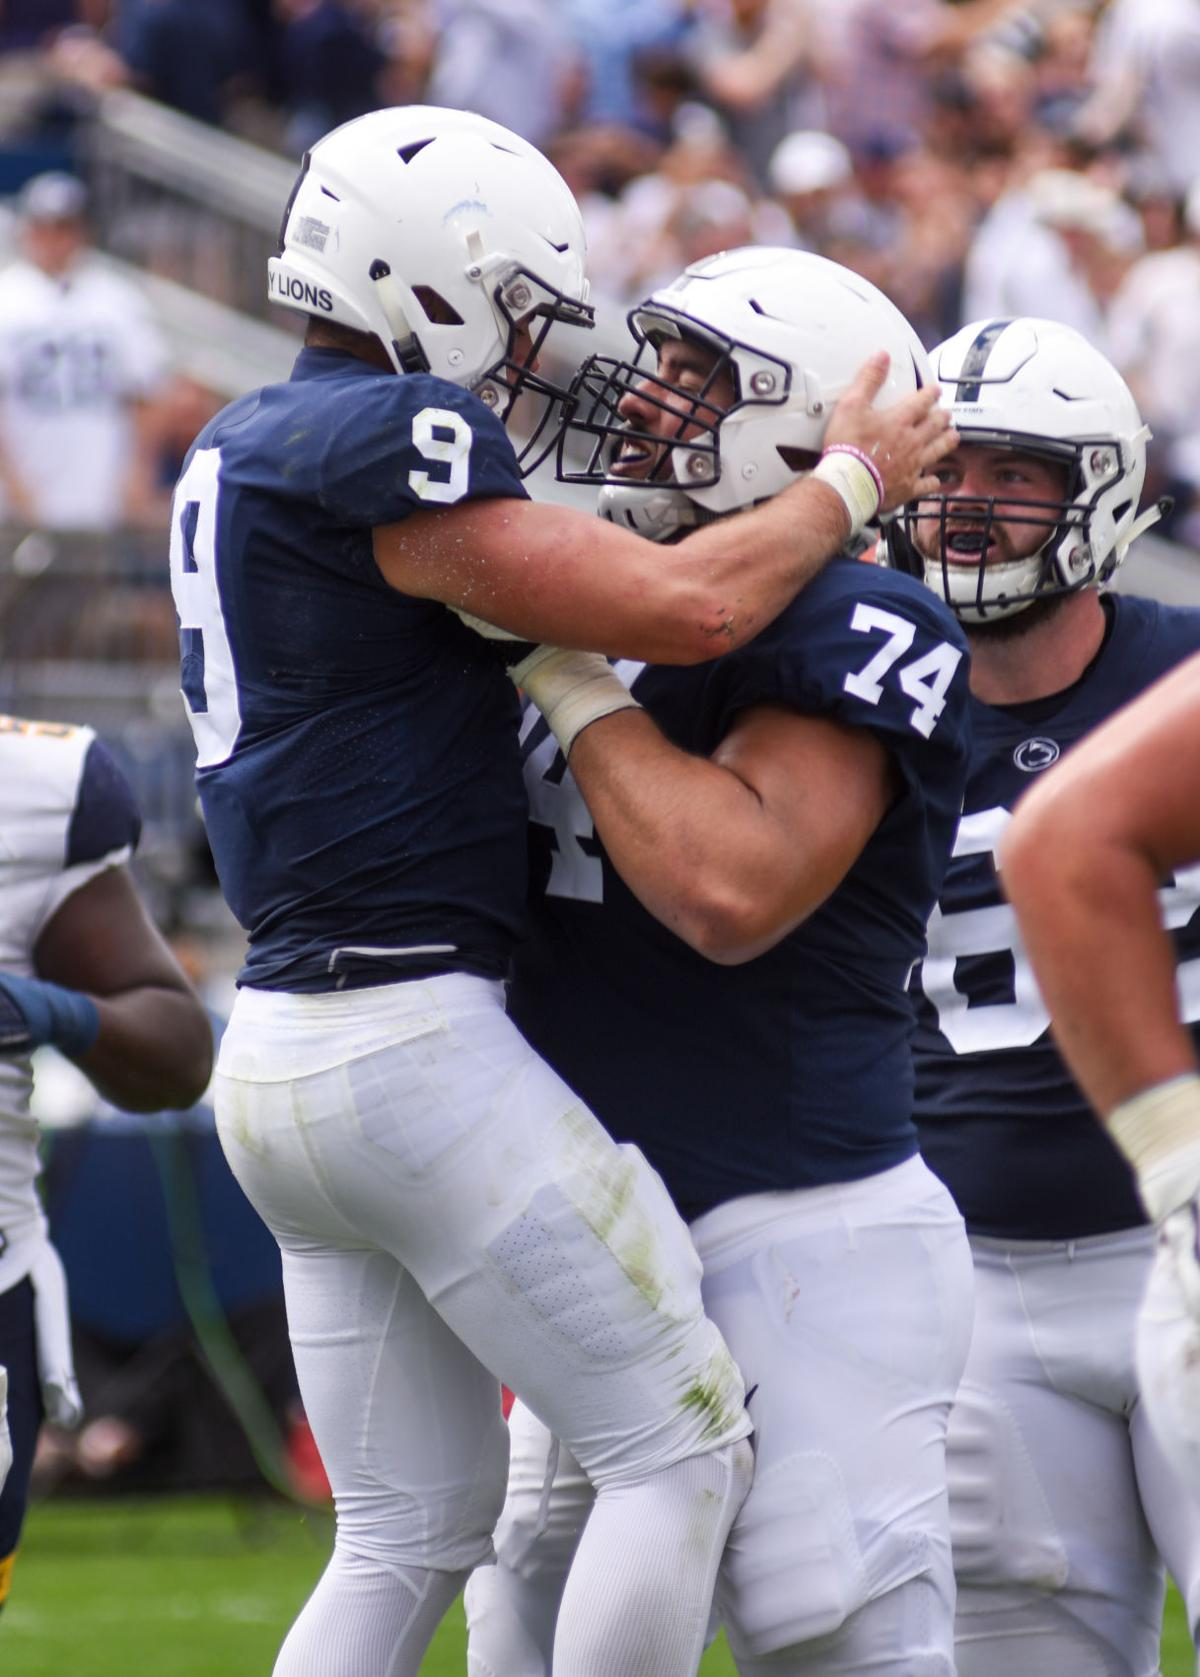 Penn State Football vs. Kent State, Trace McSorley (9)